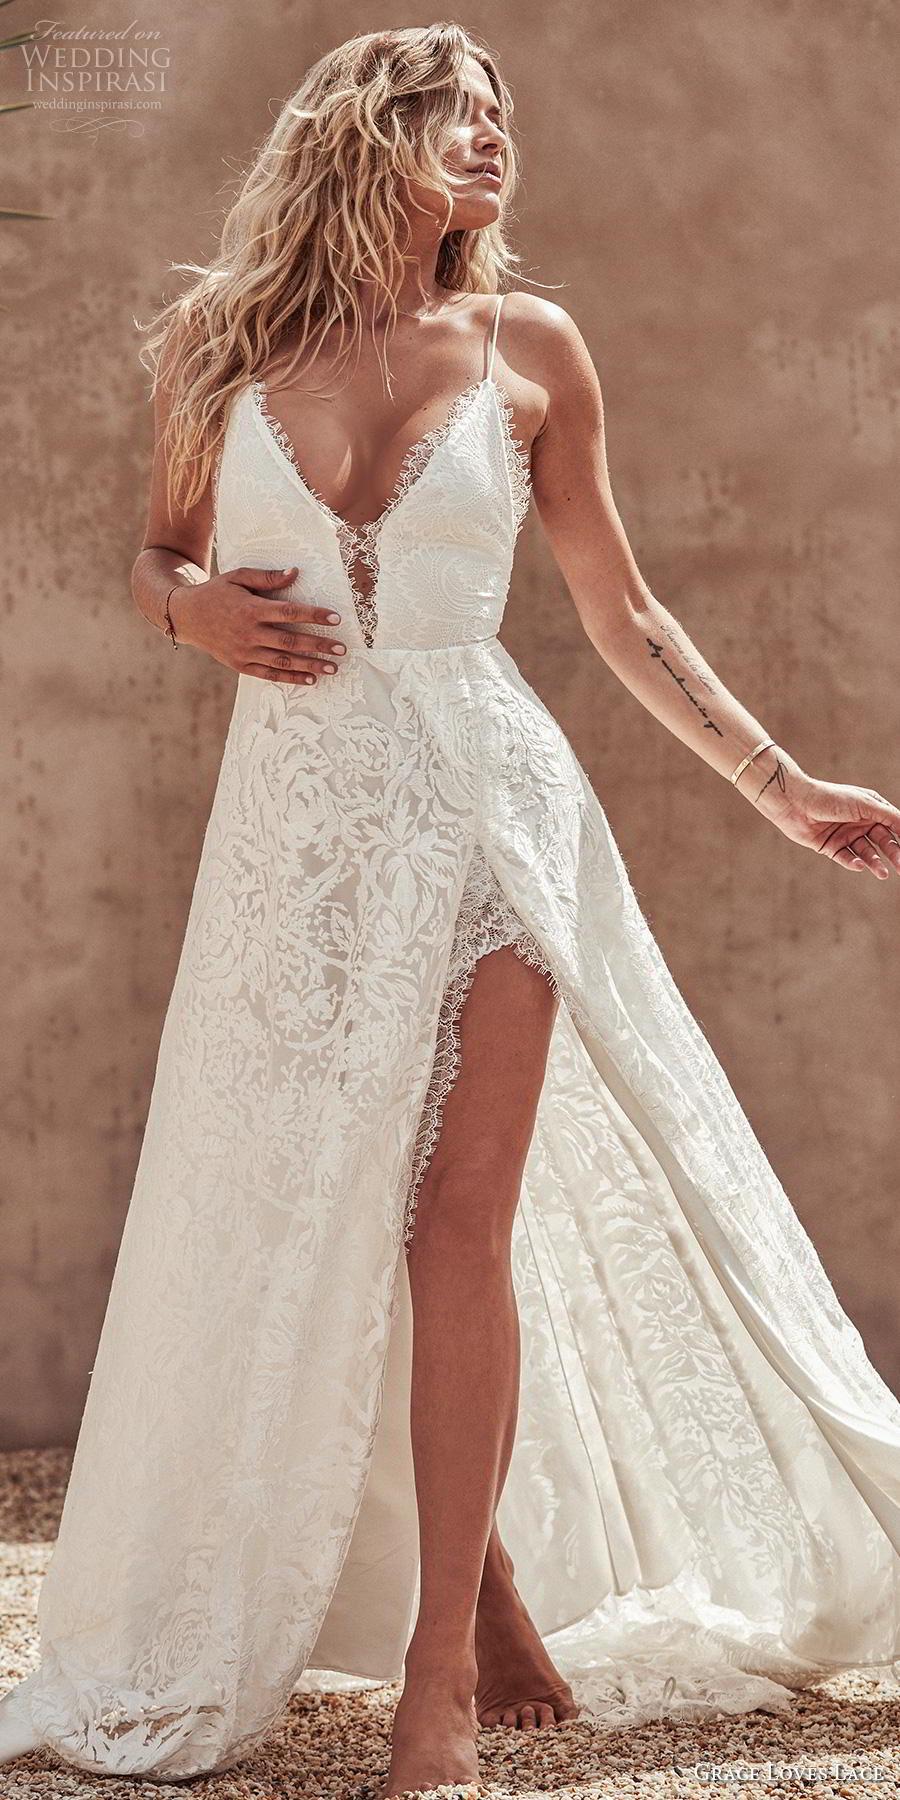 grace love lace 2020 bridal sleeveless spaghetti strap deep v neck full embellishment slit skirt sexy romantic soft a  line wedding dress backless medium train (5) lv